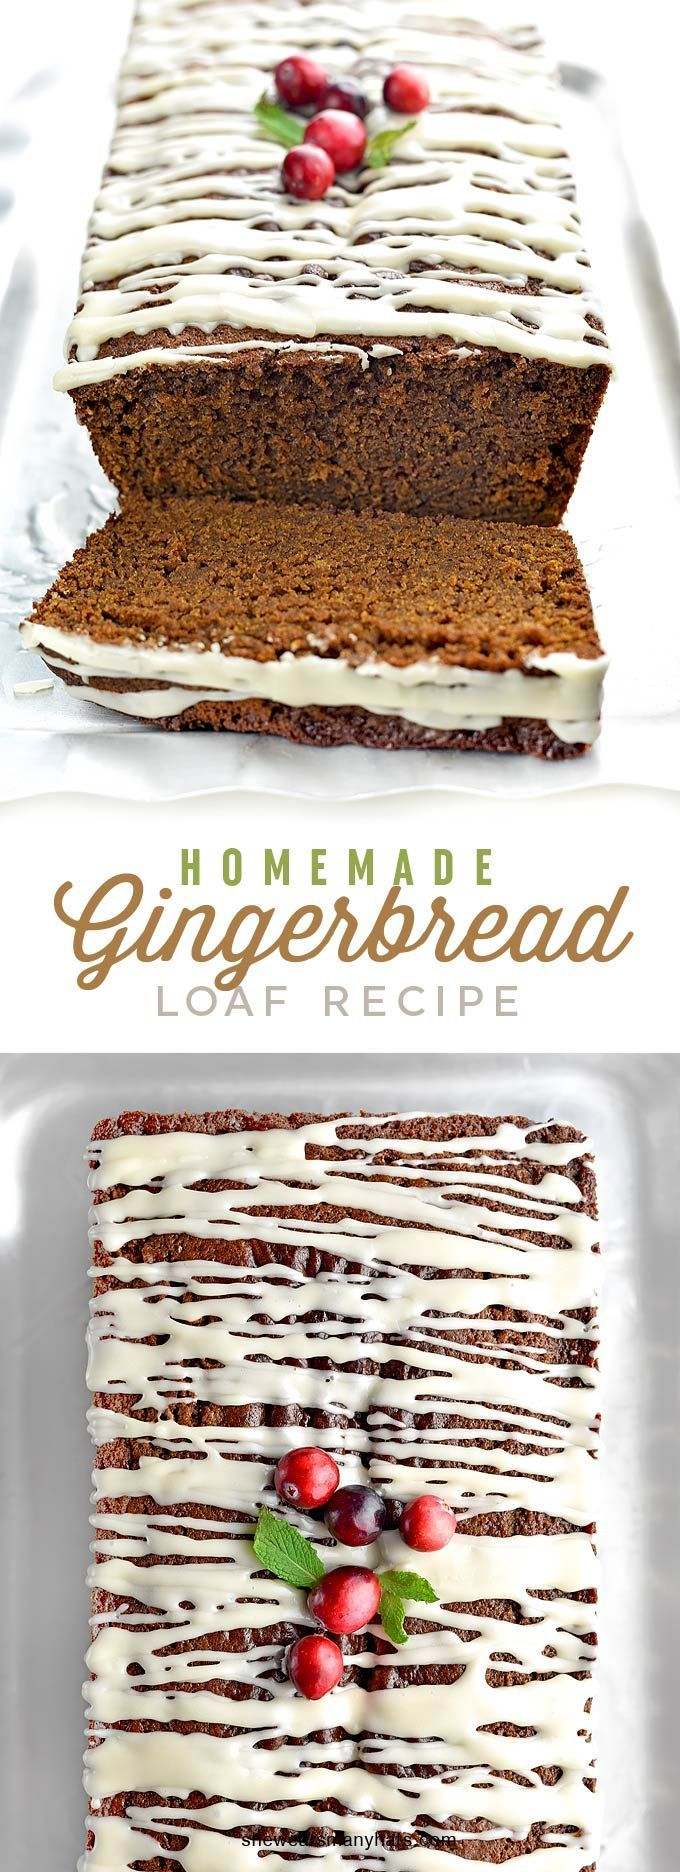 Homemade Gingerbread Loaf Recipe | shewearsmanyhats.com